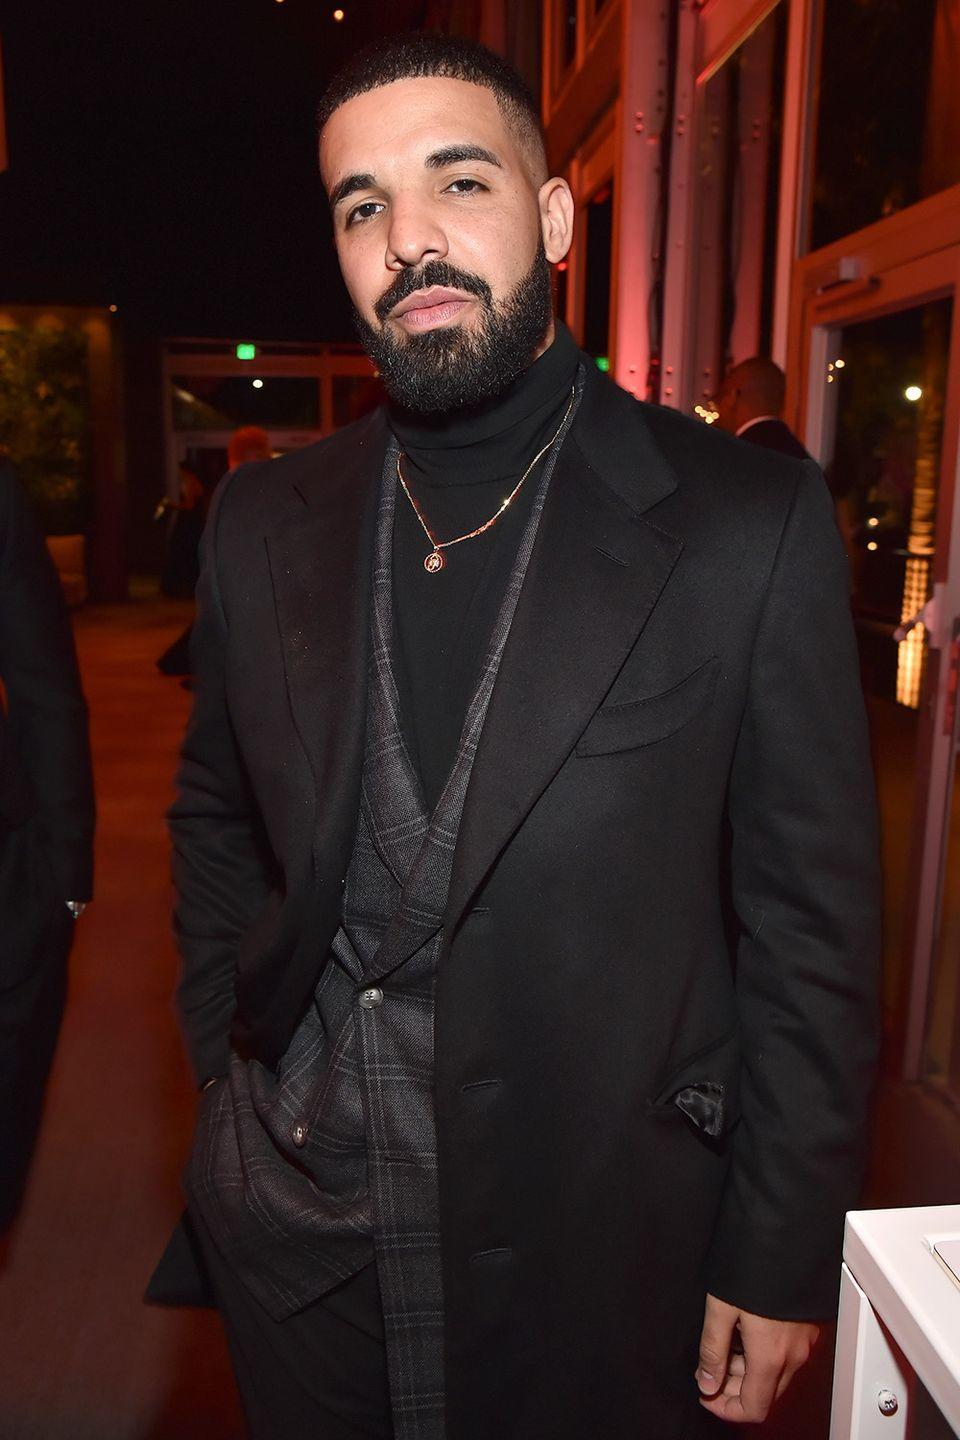 """<p><strong>Born</strong>: Aubrey Drake Graham </p><p>In the early aughts, the actor-turned-rapper starred in the Canadian high school drama TV series <em>Degrassi: The Next Generation</em>, where he was known as Aubrey Graham. <a href=""""https://metro.co.uk/2018/04/07/drakes-age-net-worth-real-name-biggest-tracks-7448162/"""" rel=""""nofollow noopener"""" target=""""_blank"""" data-ylk=""""slk:In 2006"""" class=""""link rapid-noclick-resp"""">In 2006</a>, when he started pursuing a rap career, he dropped the Aubrey and started going by Drake.</p>"""